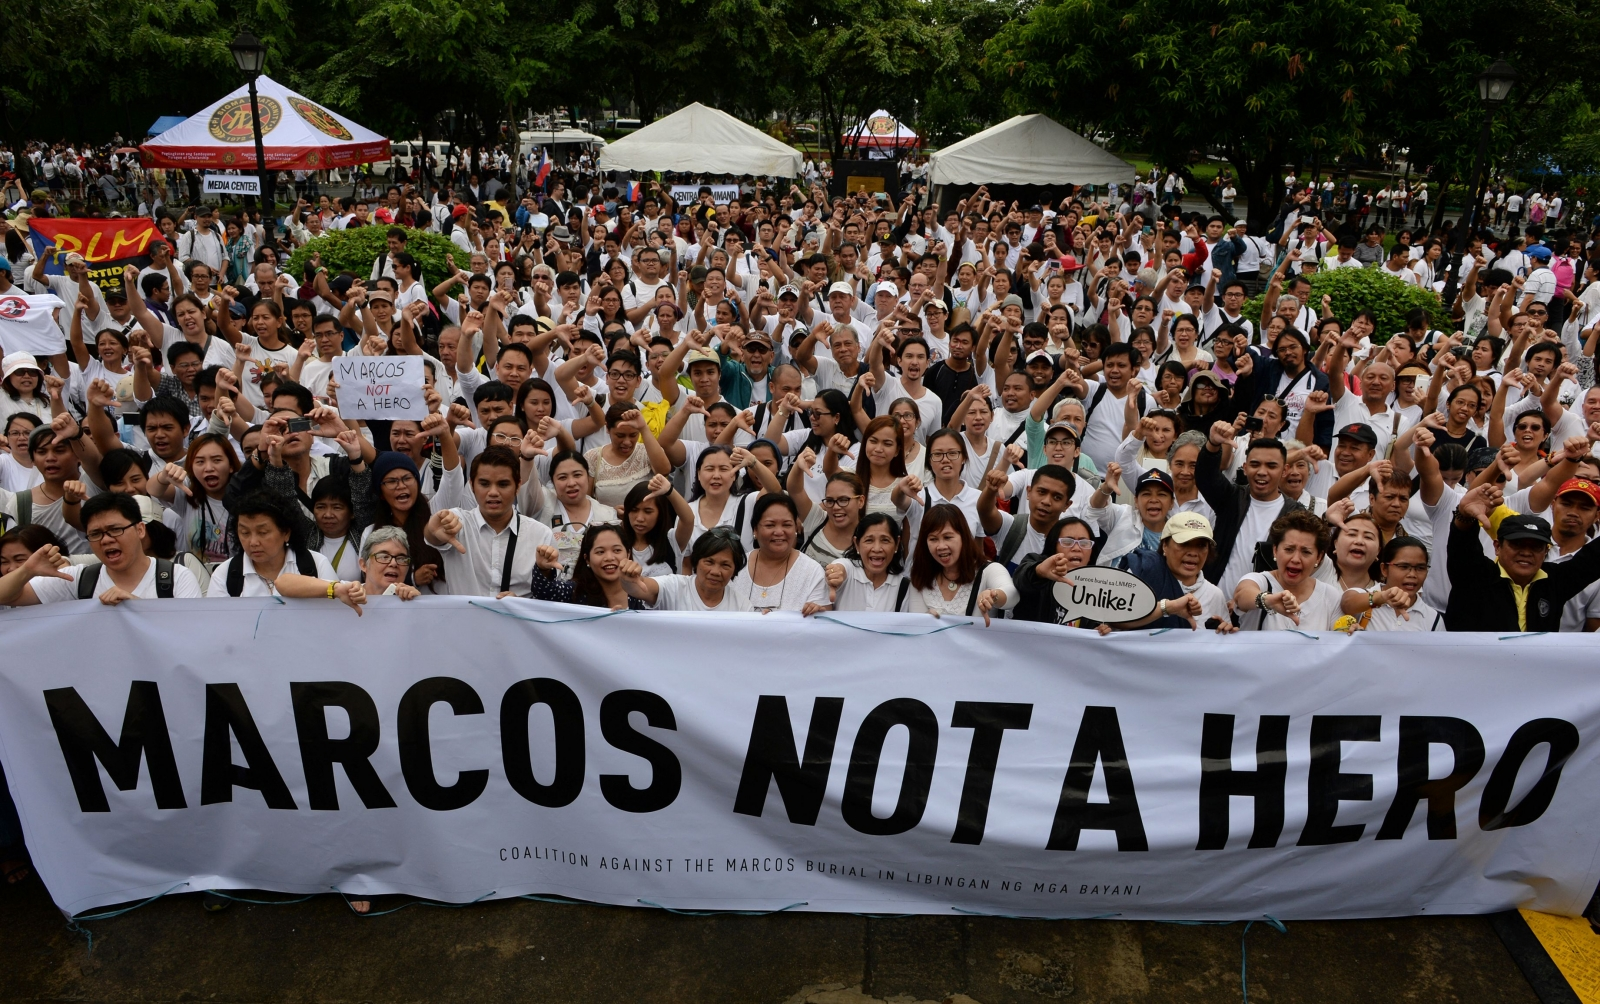 Protests grow over Marcos state funeral plan